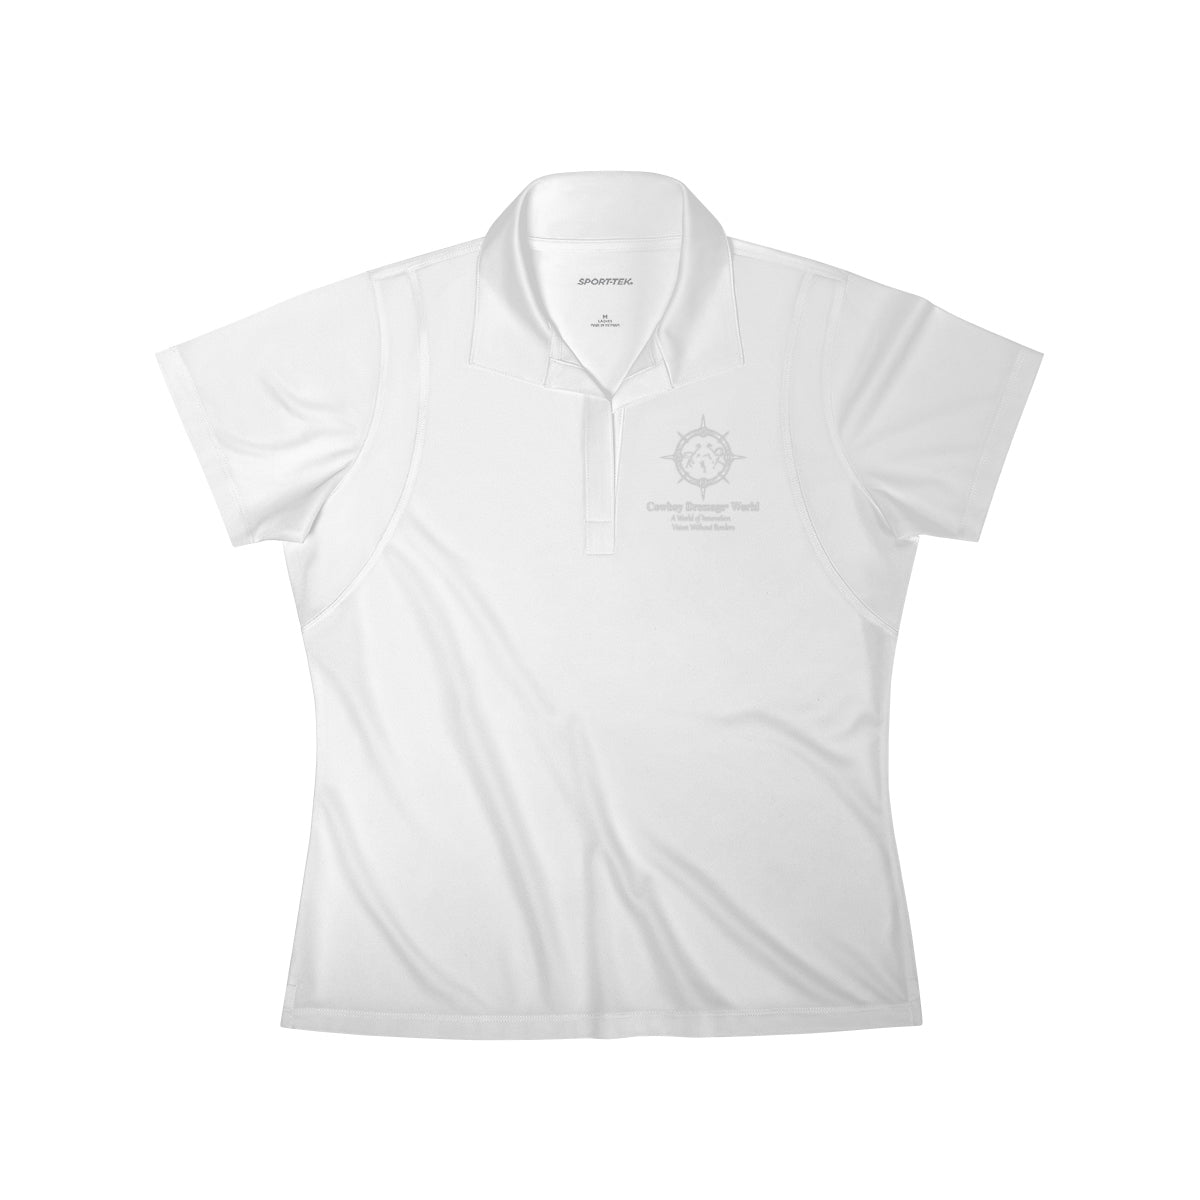 Cowboy Dressage Women's Polo Shirt